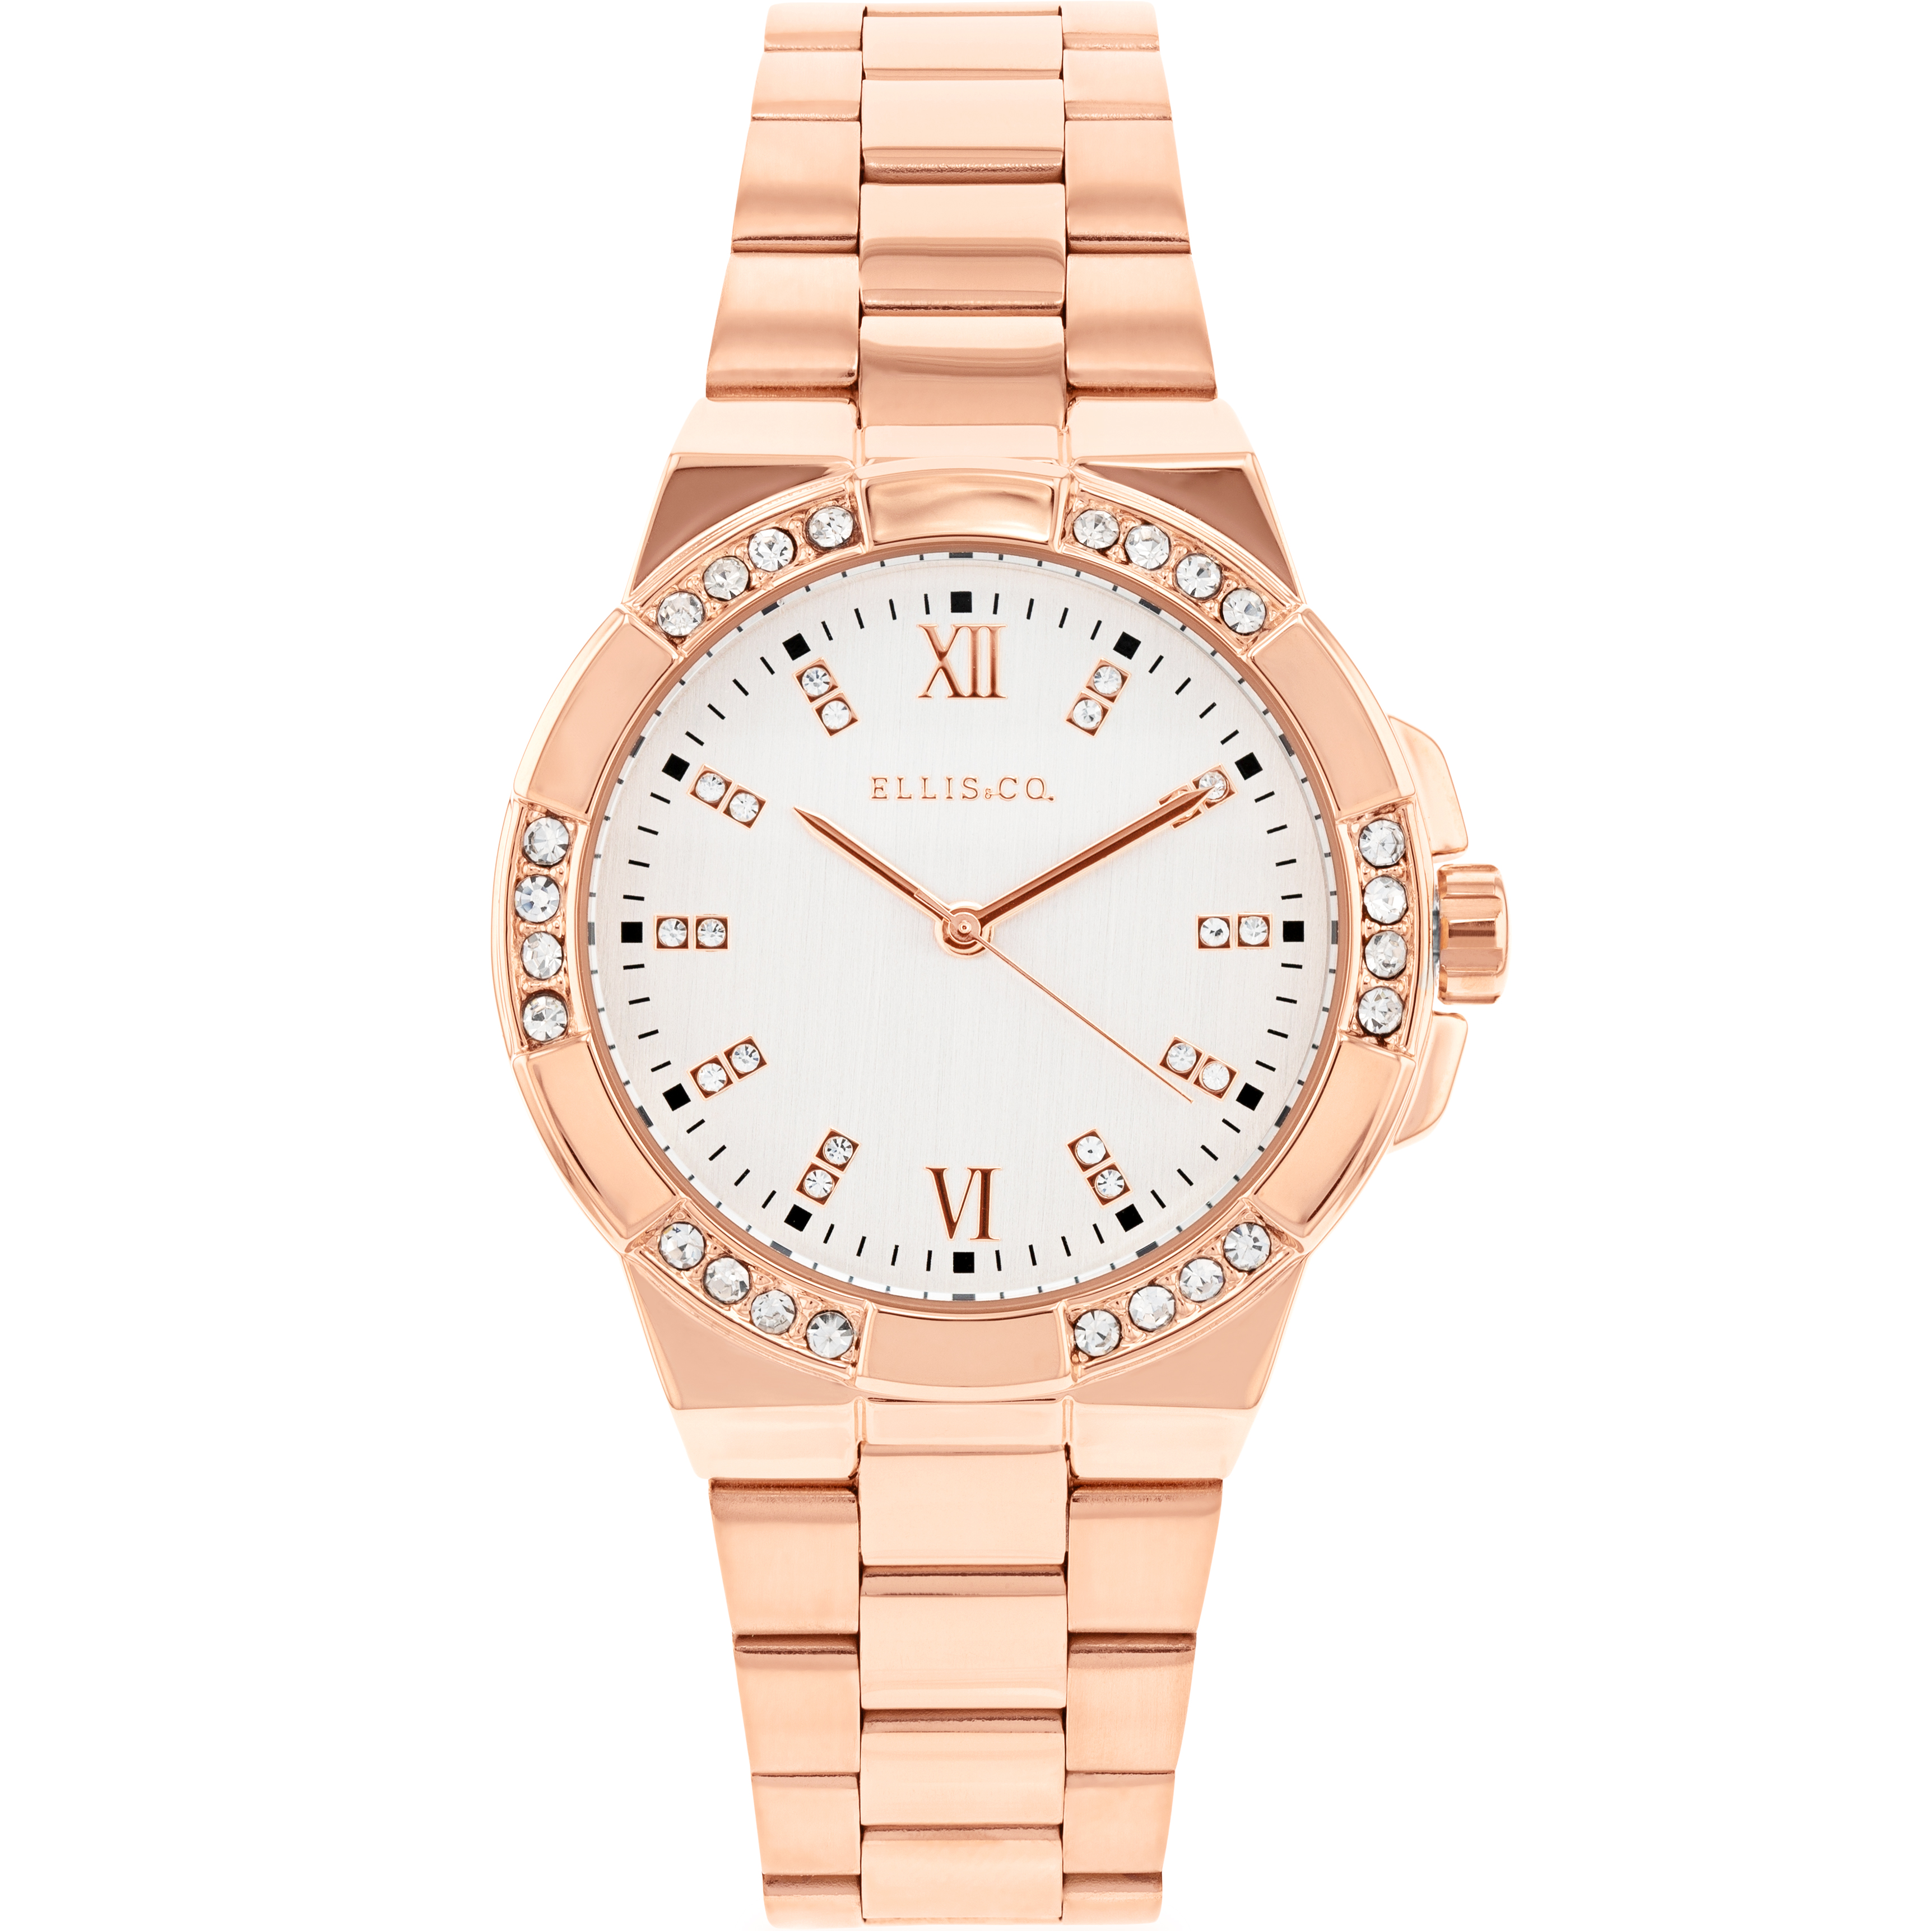 Ellis & Co 'Alysa' Rose Gold Plated Women's Watch